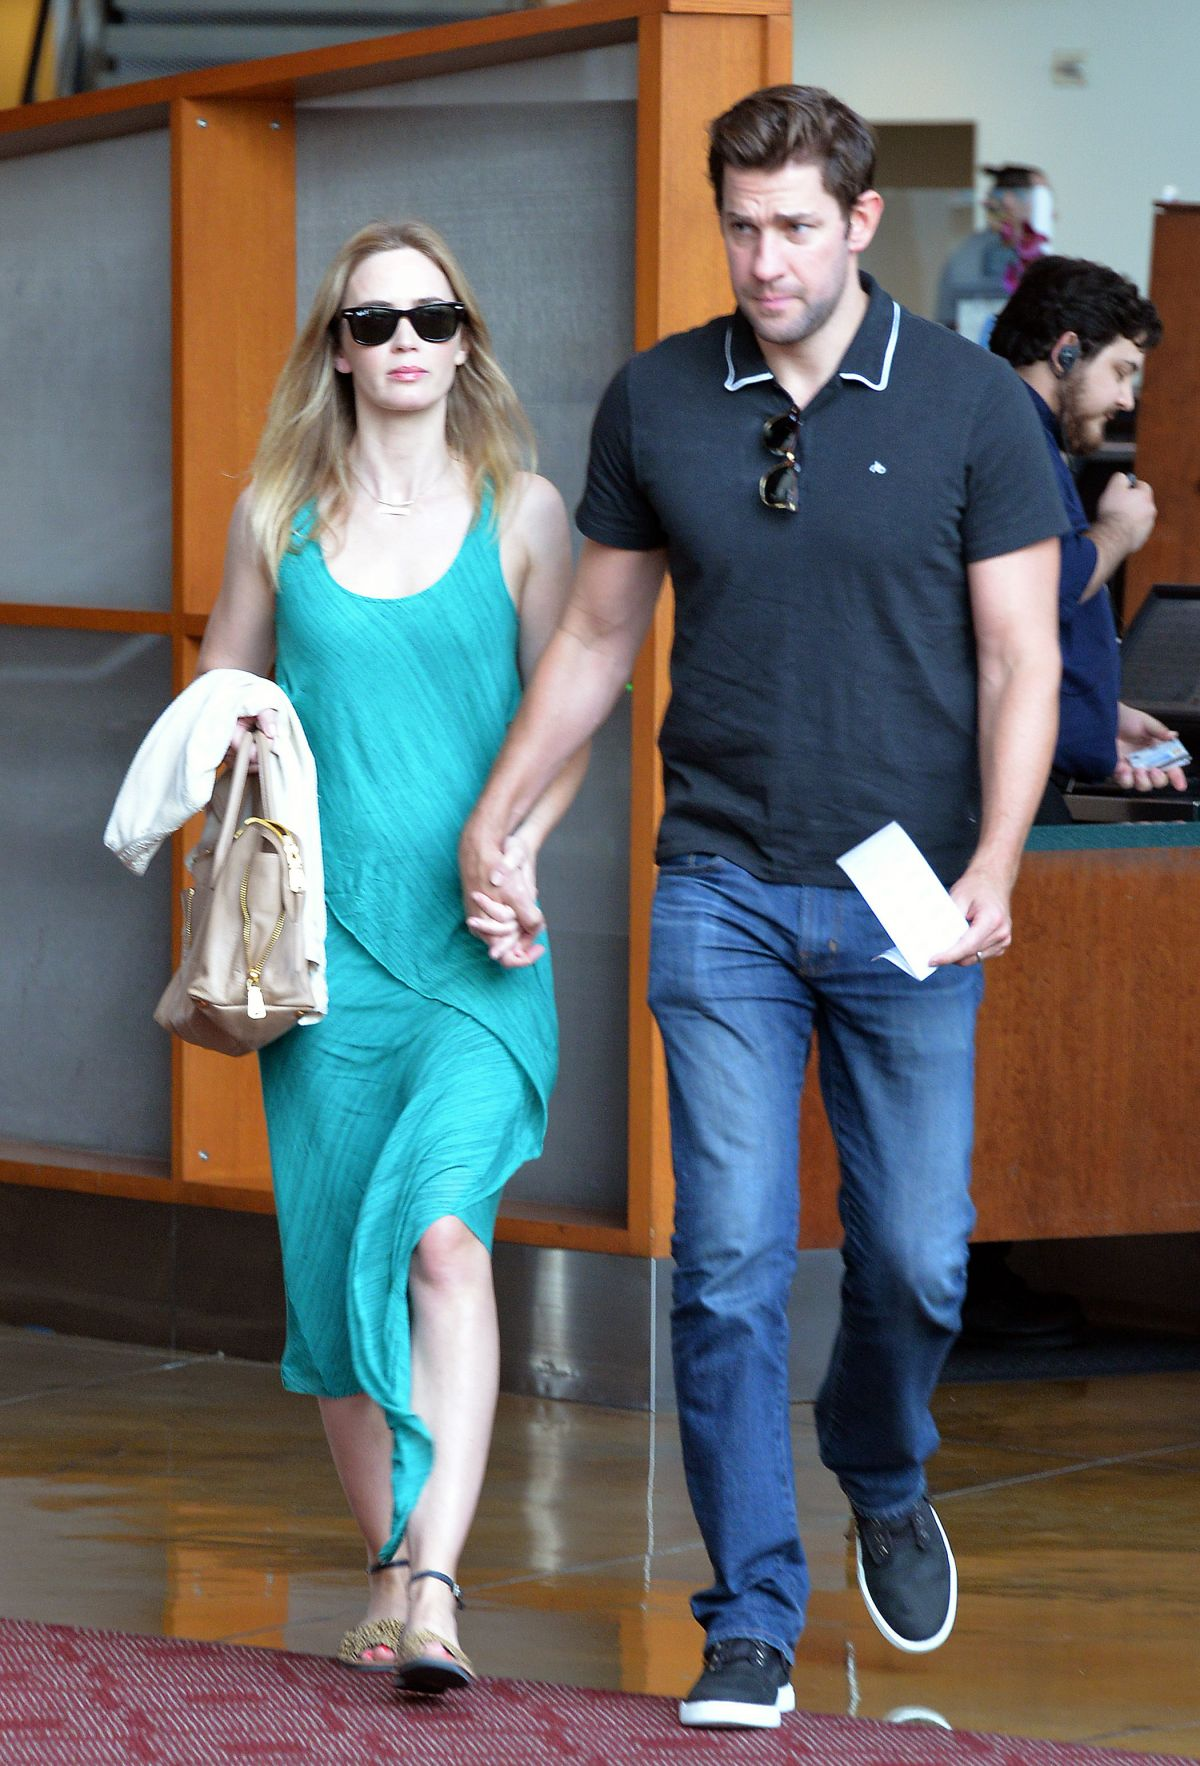 emily-blunt-and-john-krasinski-out-and-about-in-los-angeles-08-07-2015_4